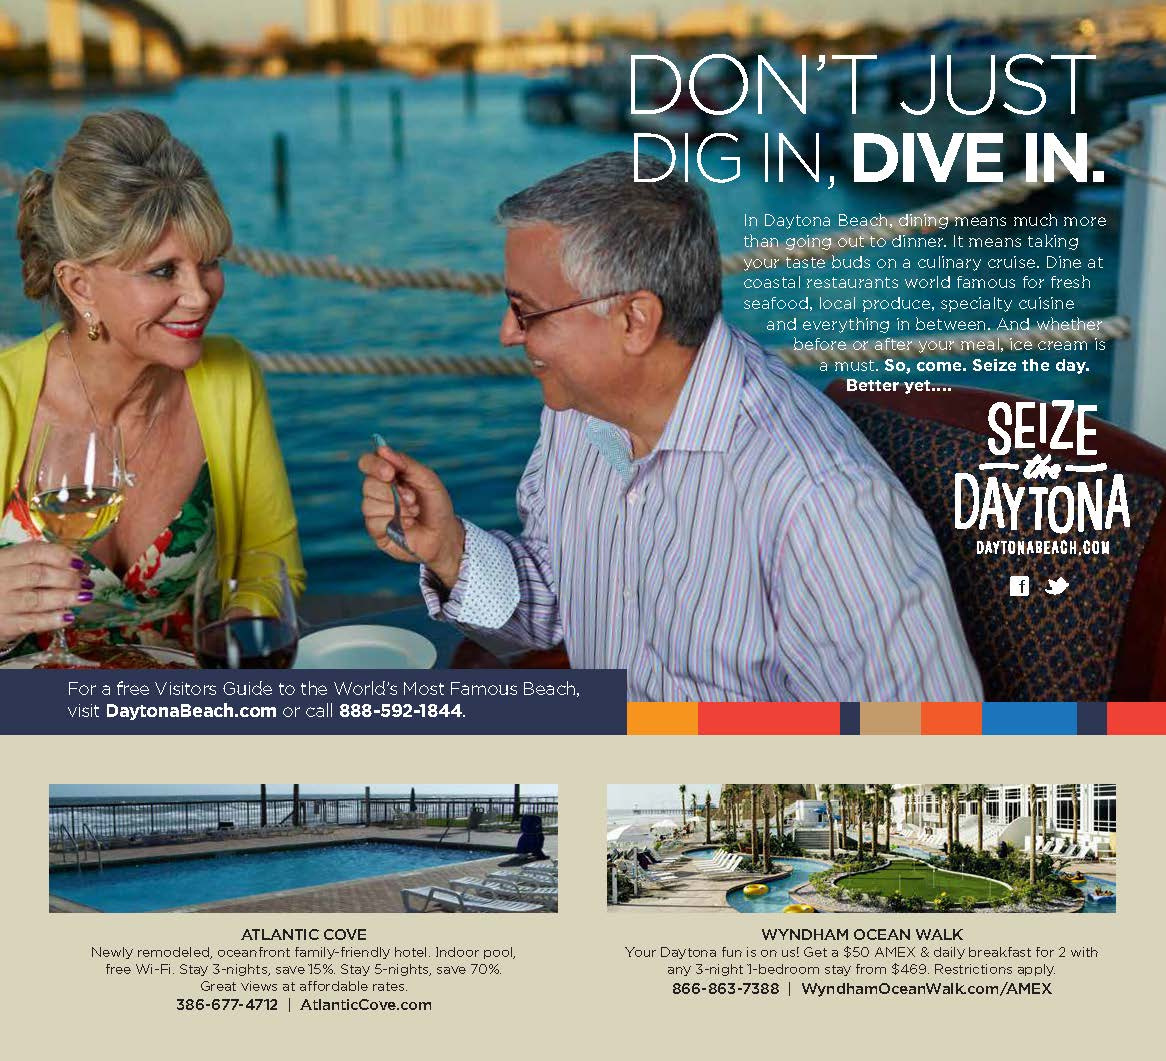 Daytona Beach Area Convention & Visitors Bureau — Seize the Daytona Campaign